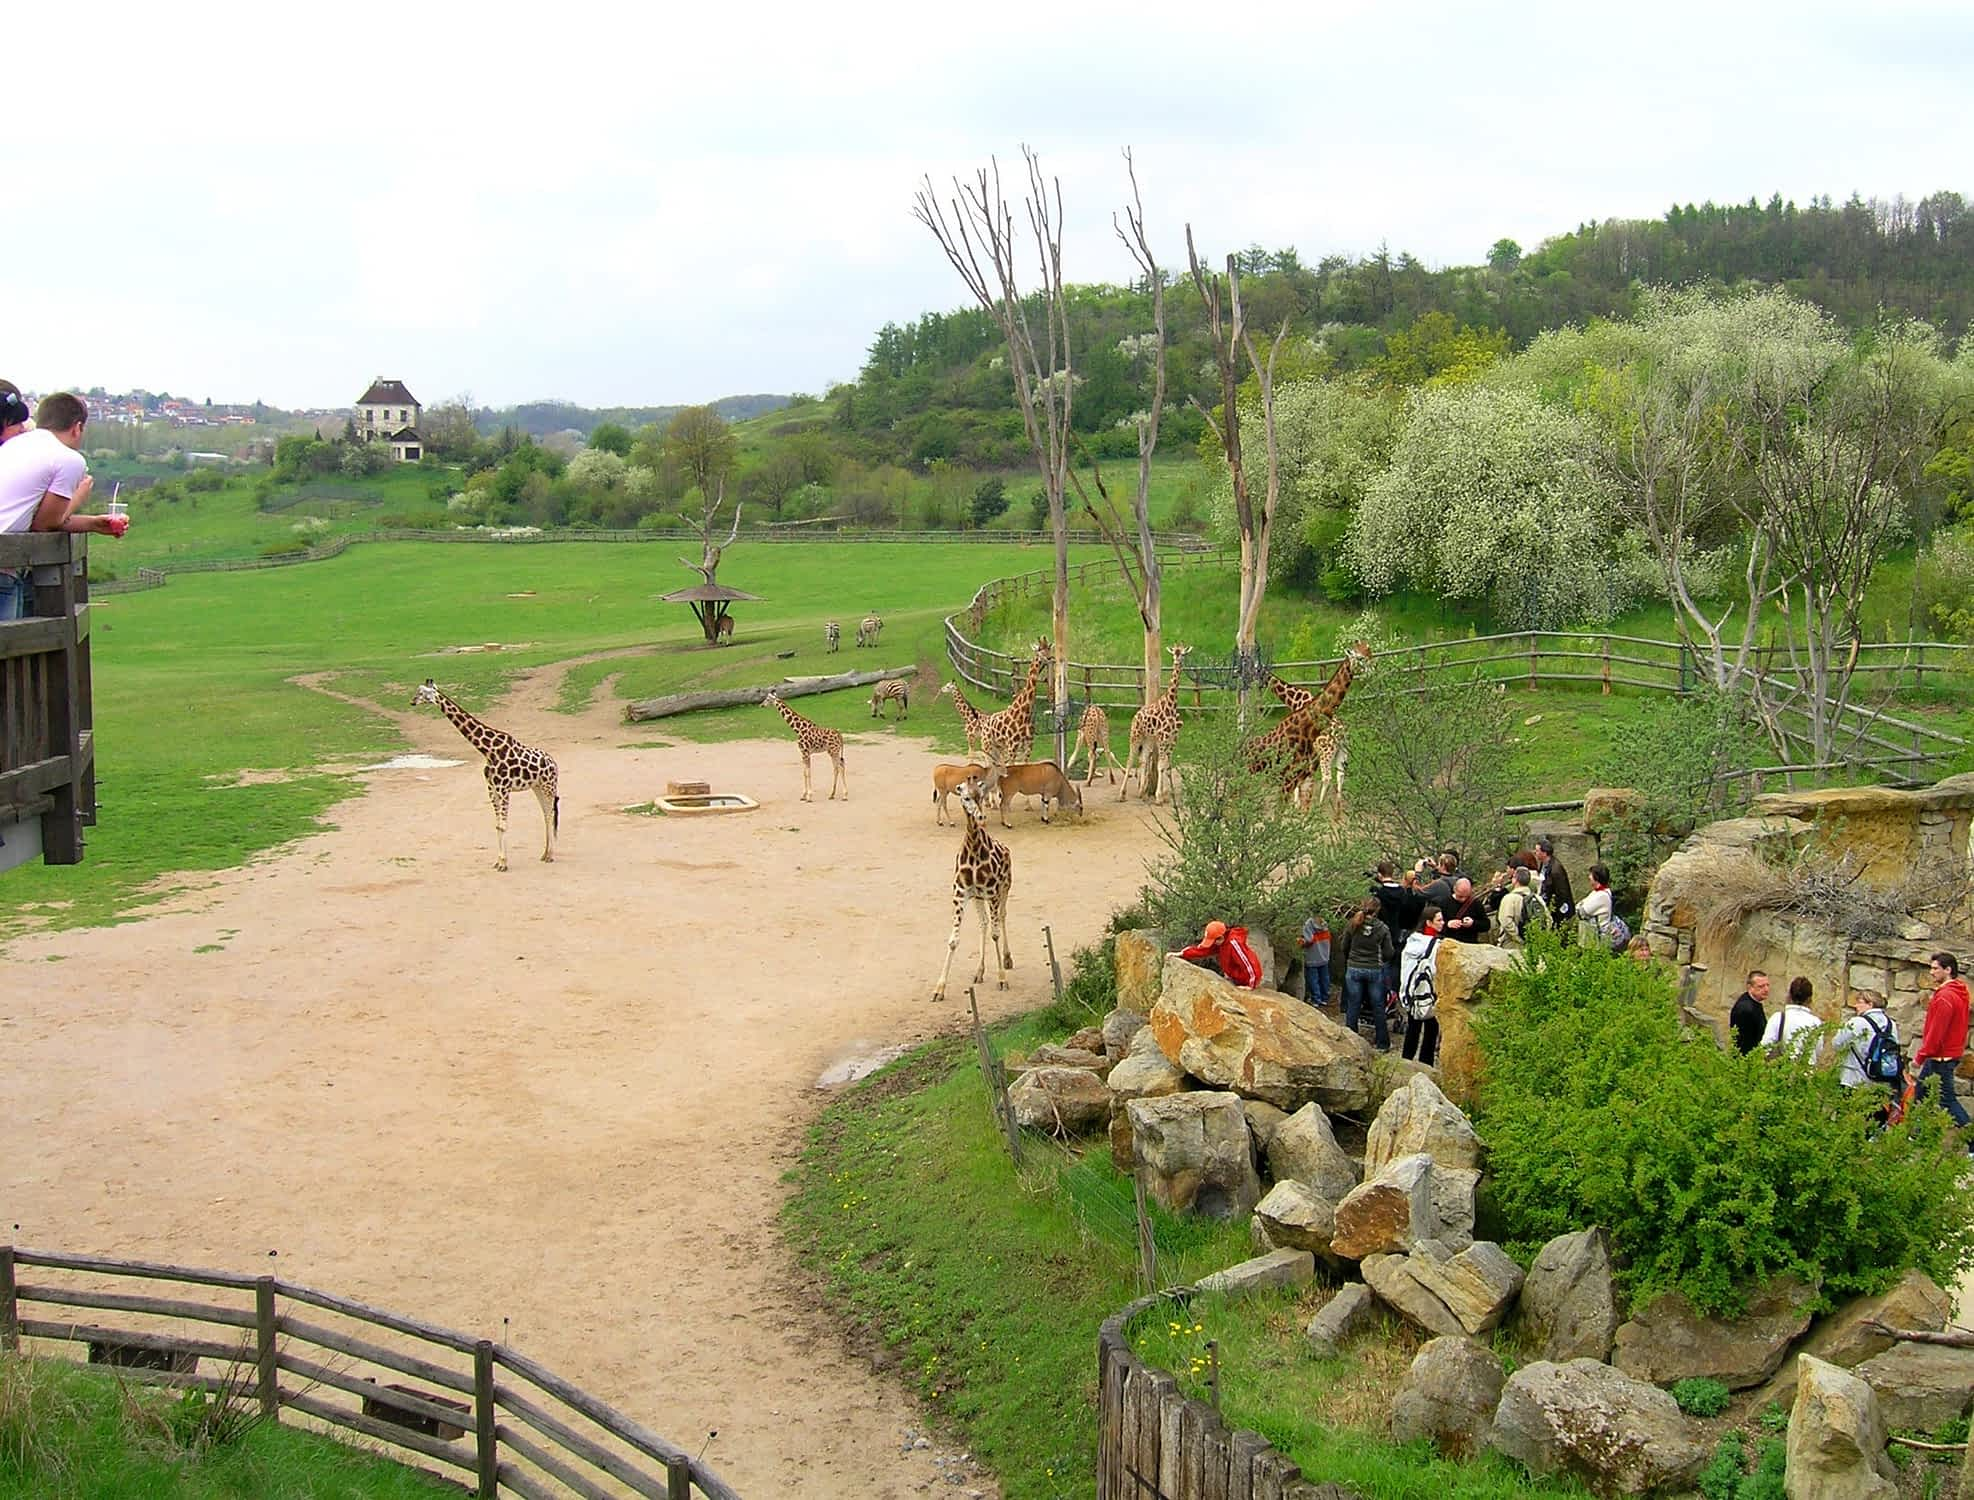 Giraffe exposition is one of the most visited part of the Prague Zoo